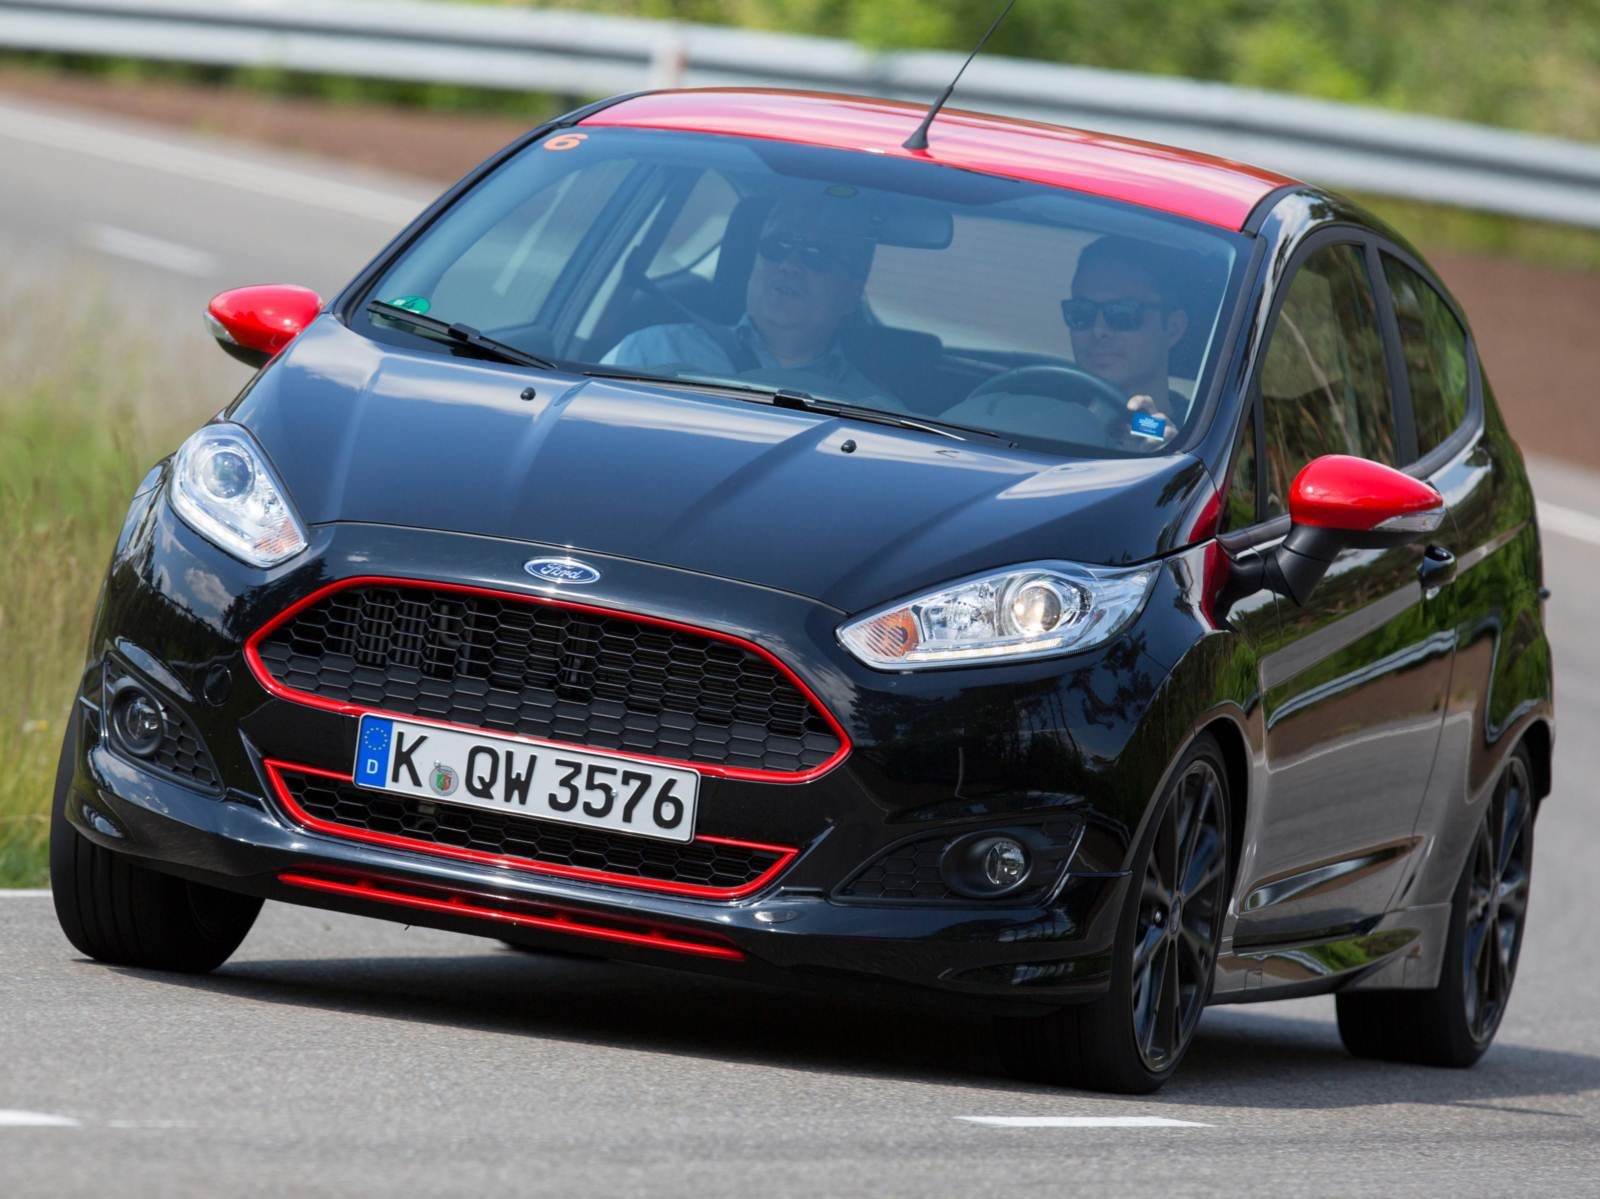 Novo Ford Fiesta Red & Black 1.0 Turbo 140 cavalos